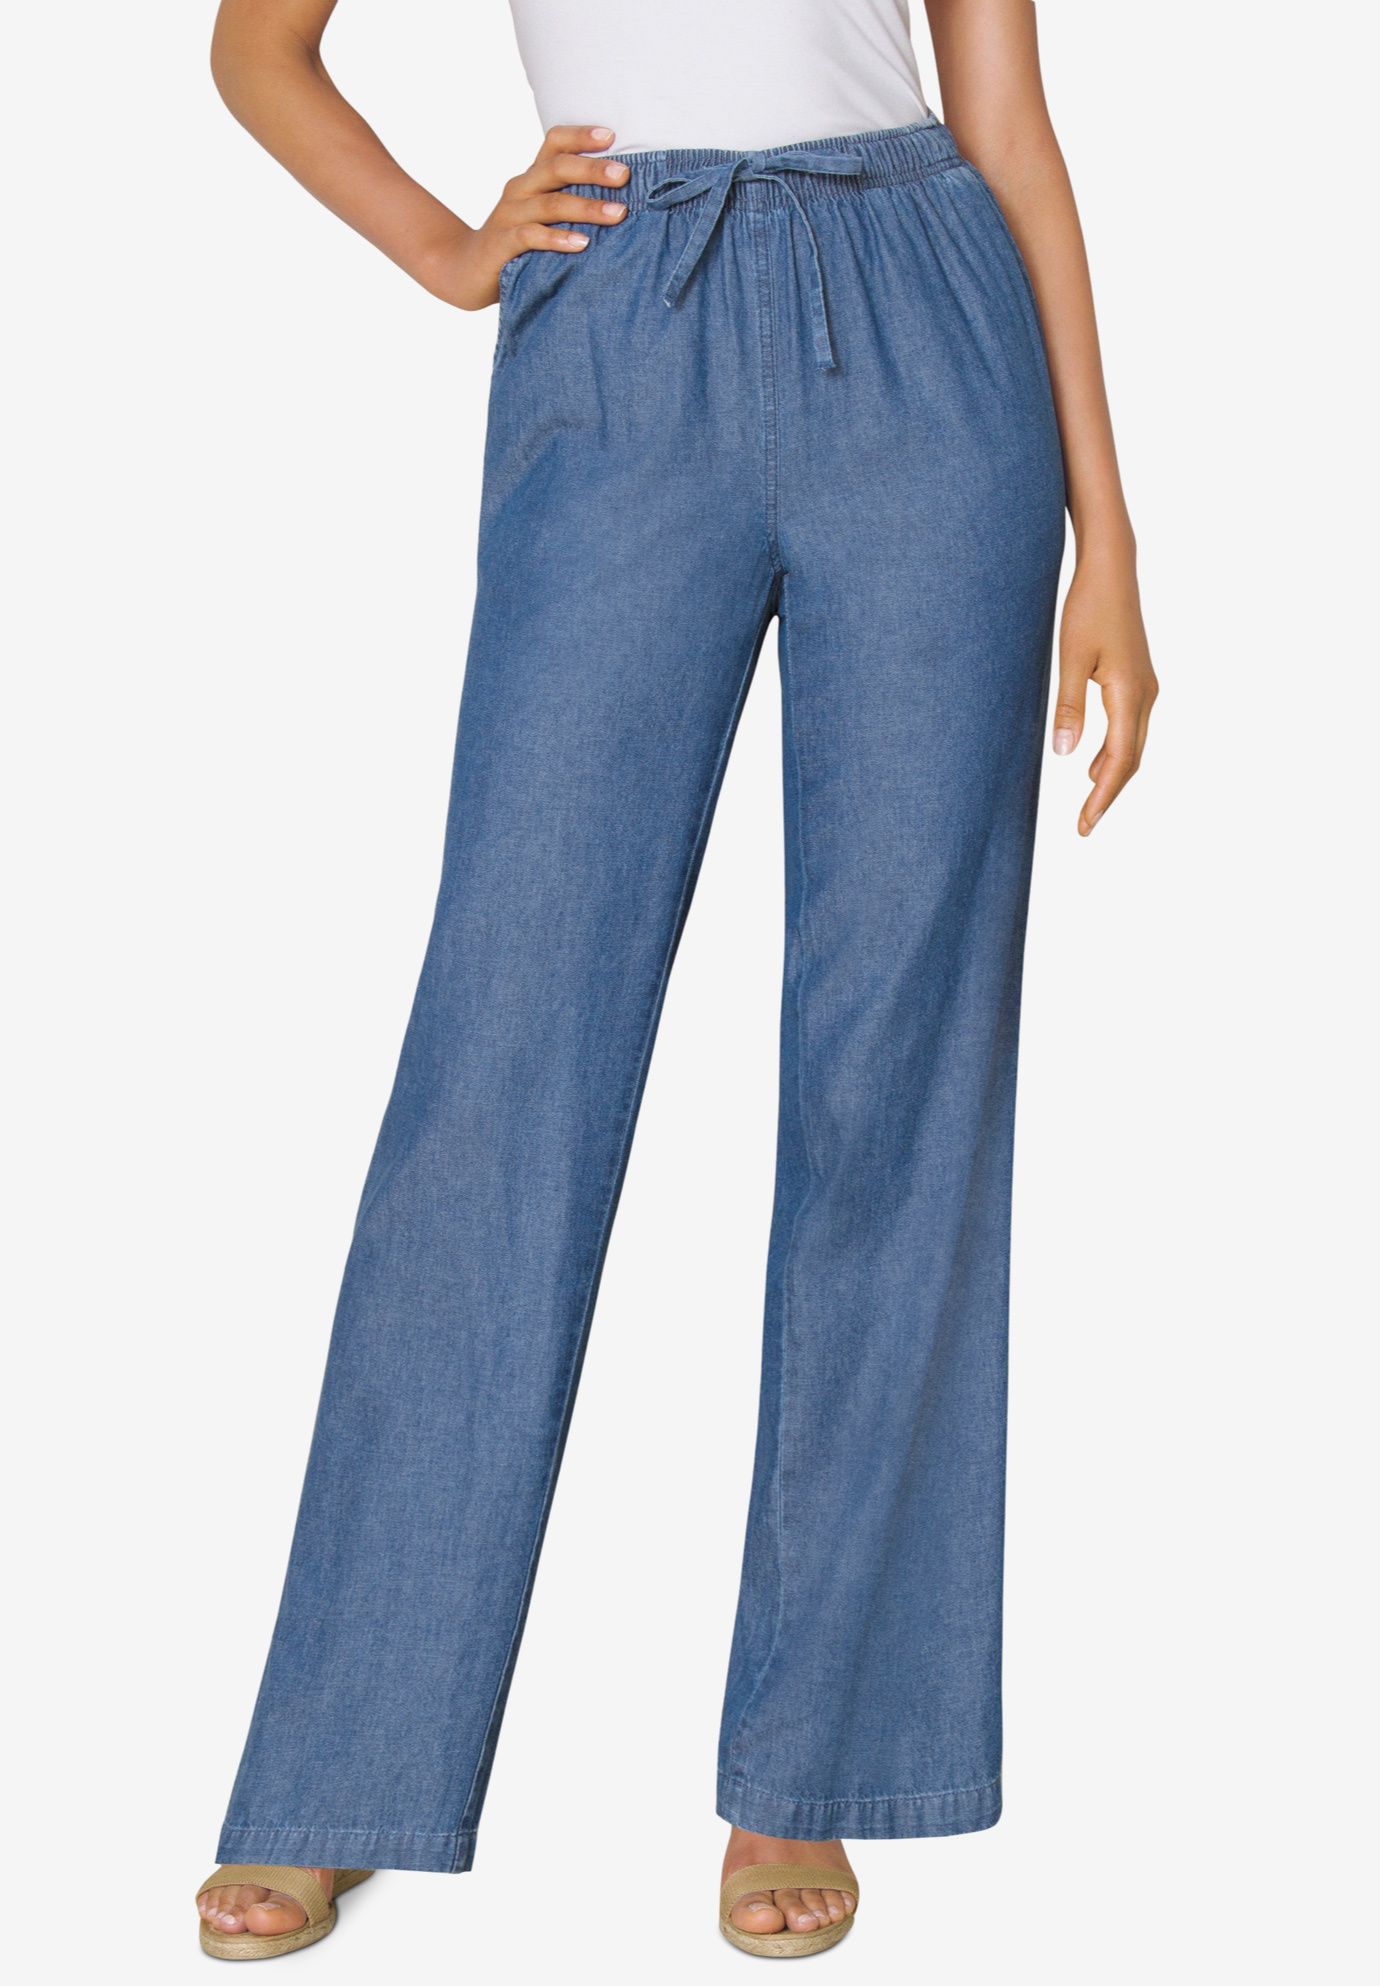 Pull-On Elastic Waist Cotton Chambray Pants,